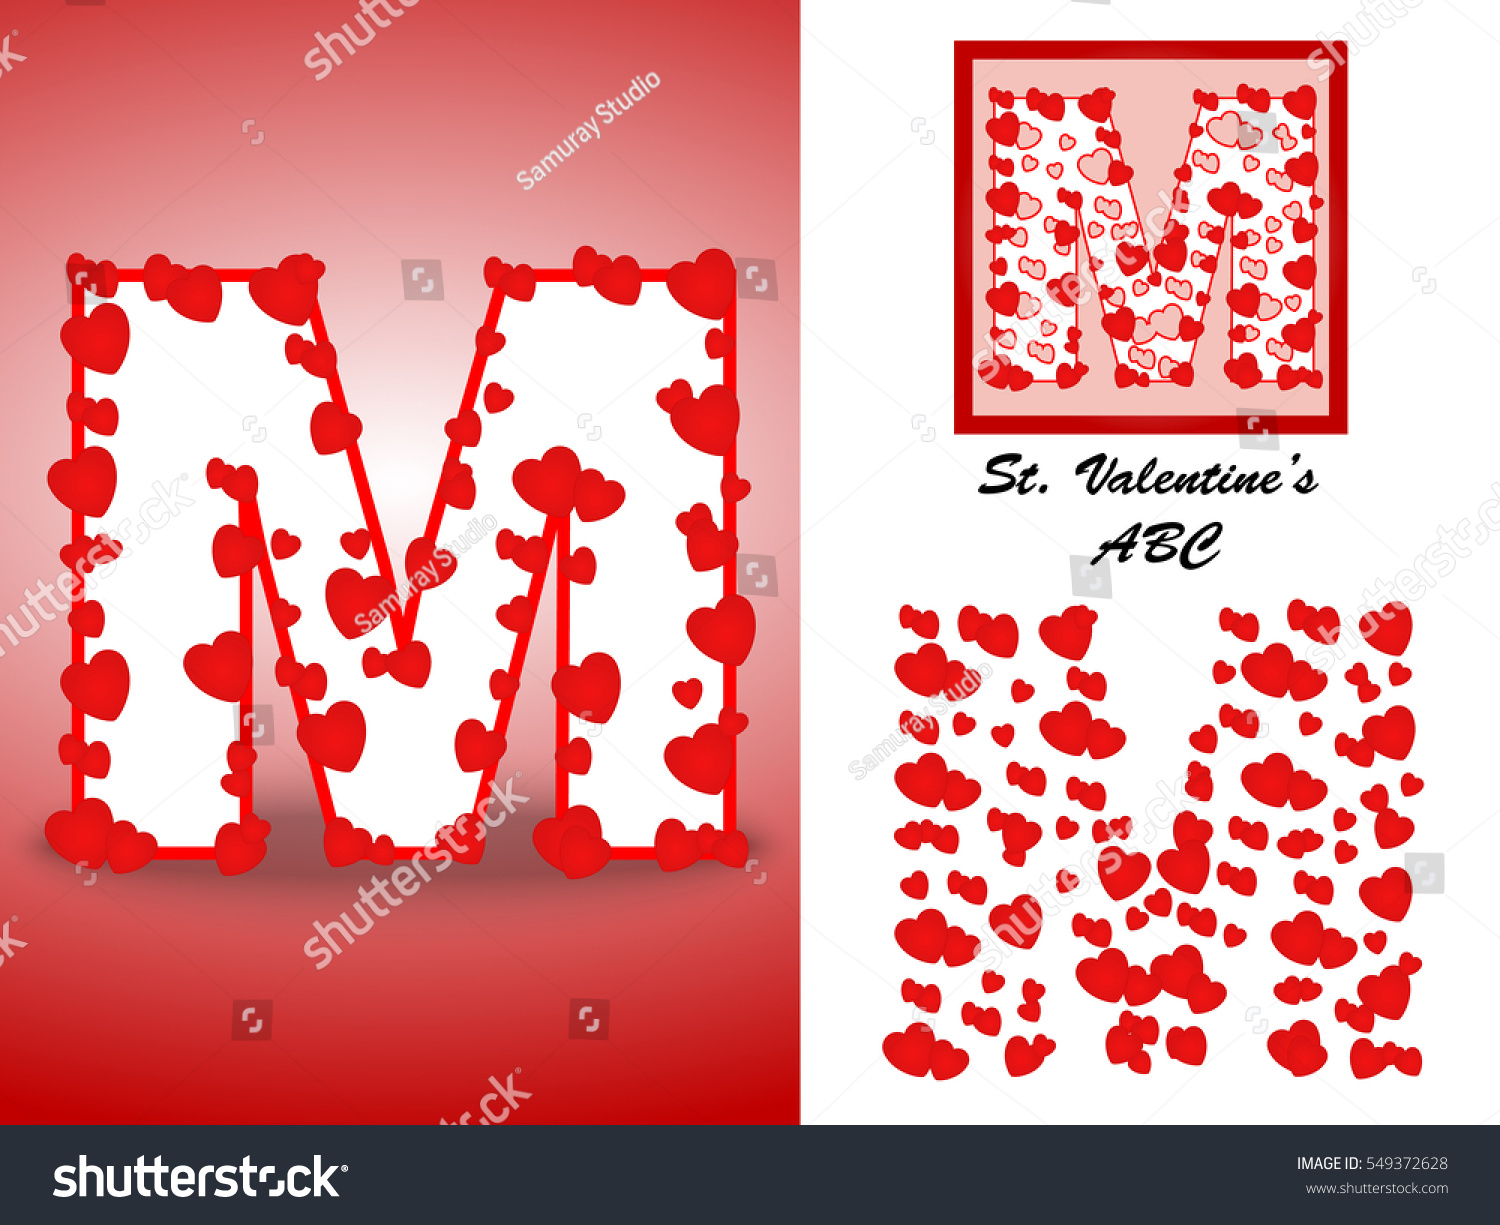 Alphabet Letter M Red Heart Valentine Stock Vector (Royalty Free ...